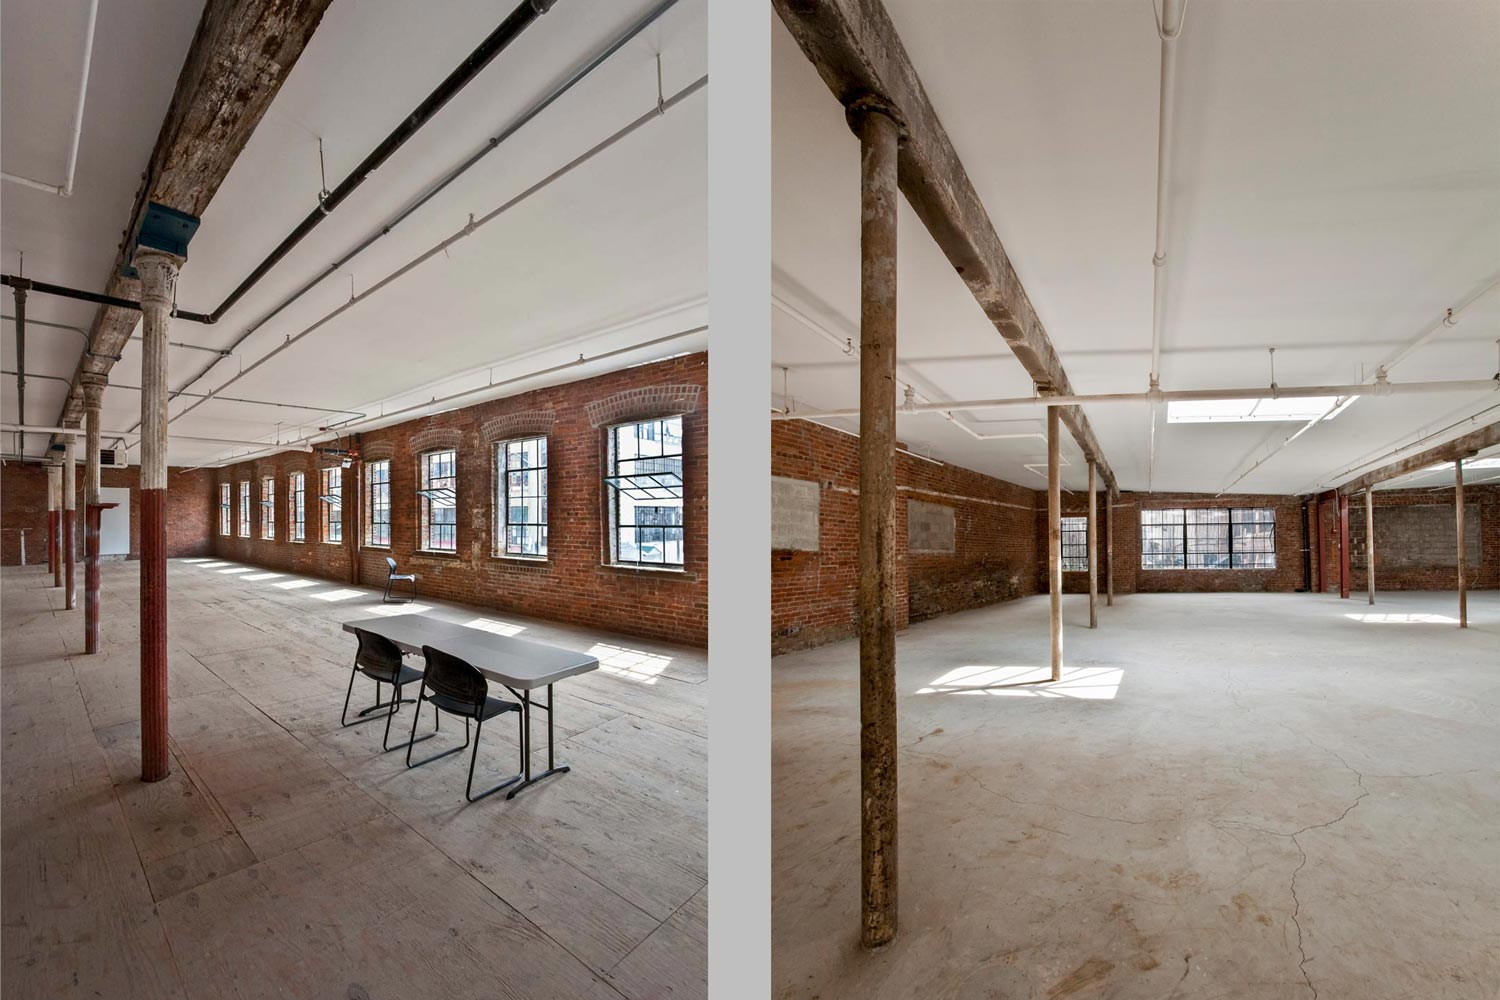 McKibbin Street Industrial Center workshops, renovation and historic preservation by OCV Architects.